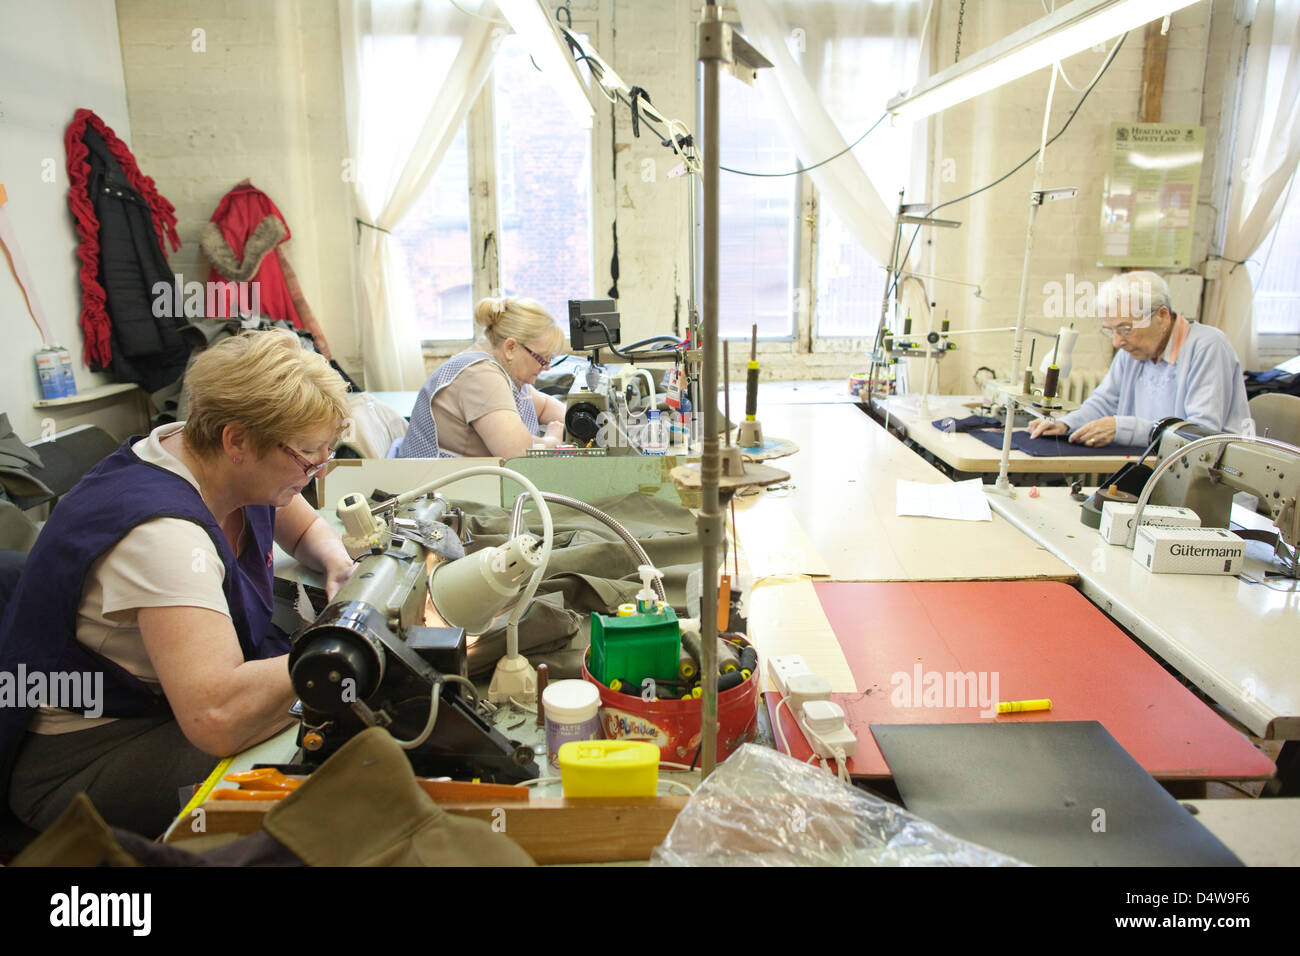 Factory floor at British clothes manufacturer Private White V.C. in Salford, Manchester, England, UK - Stock Image